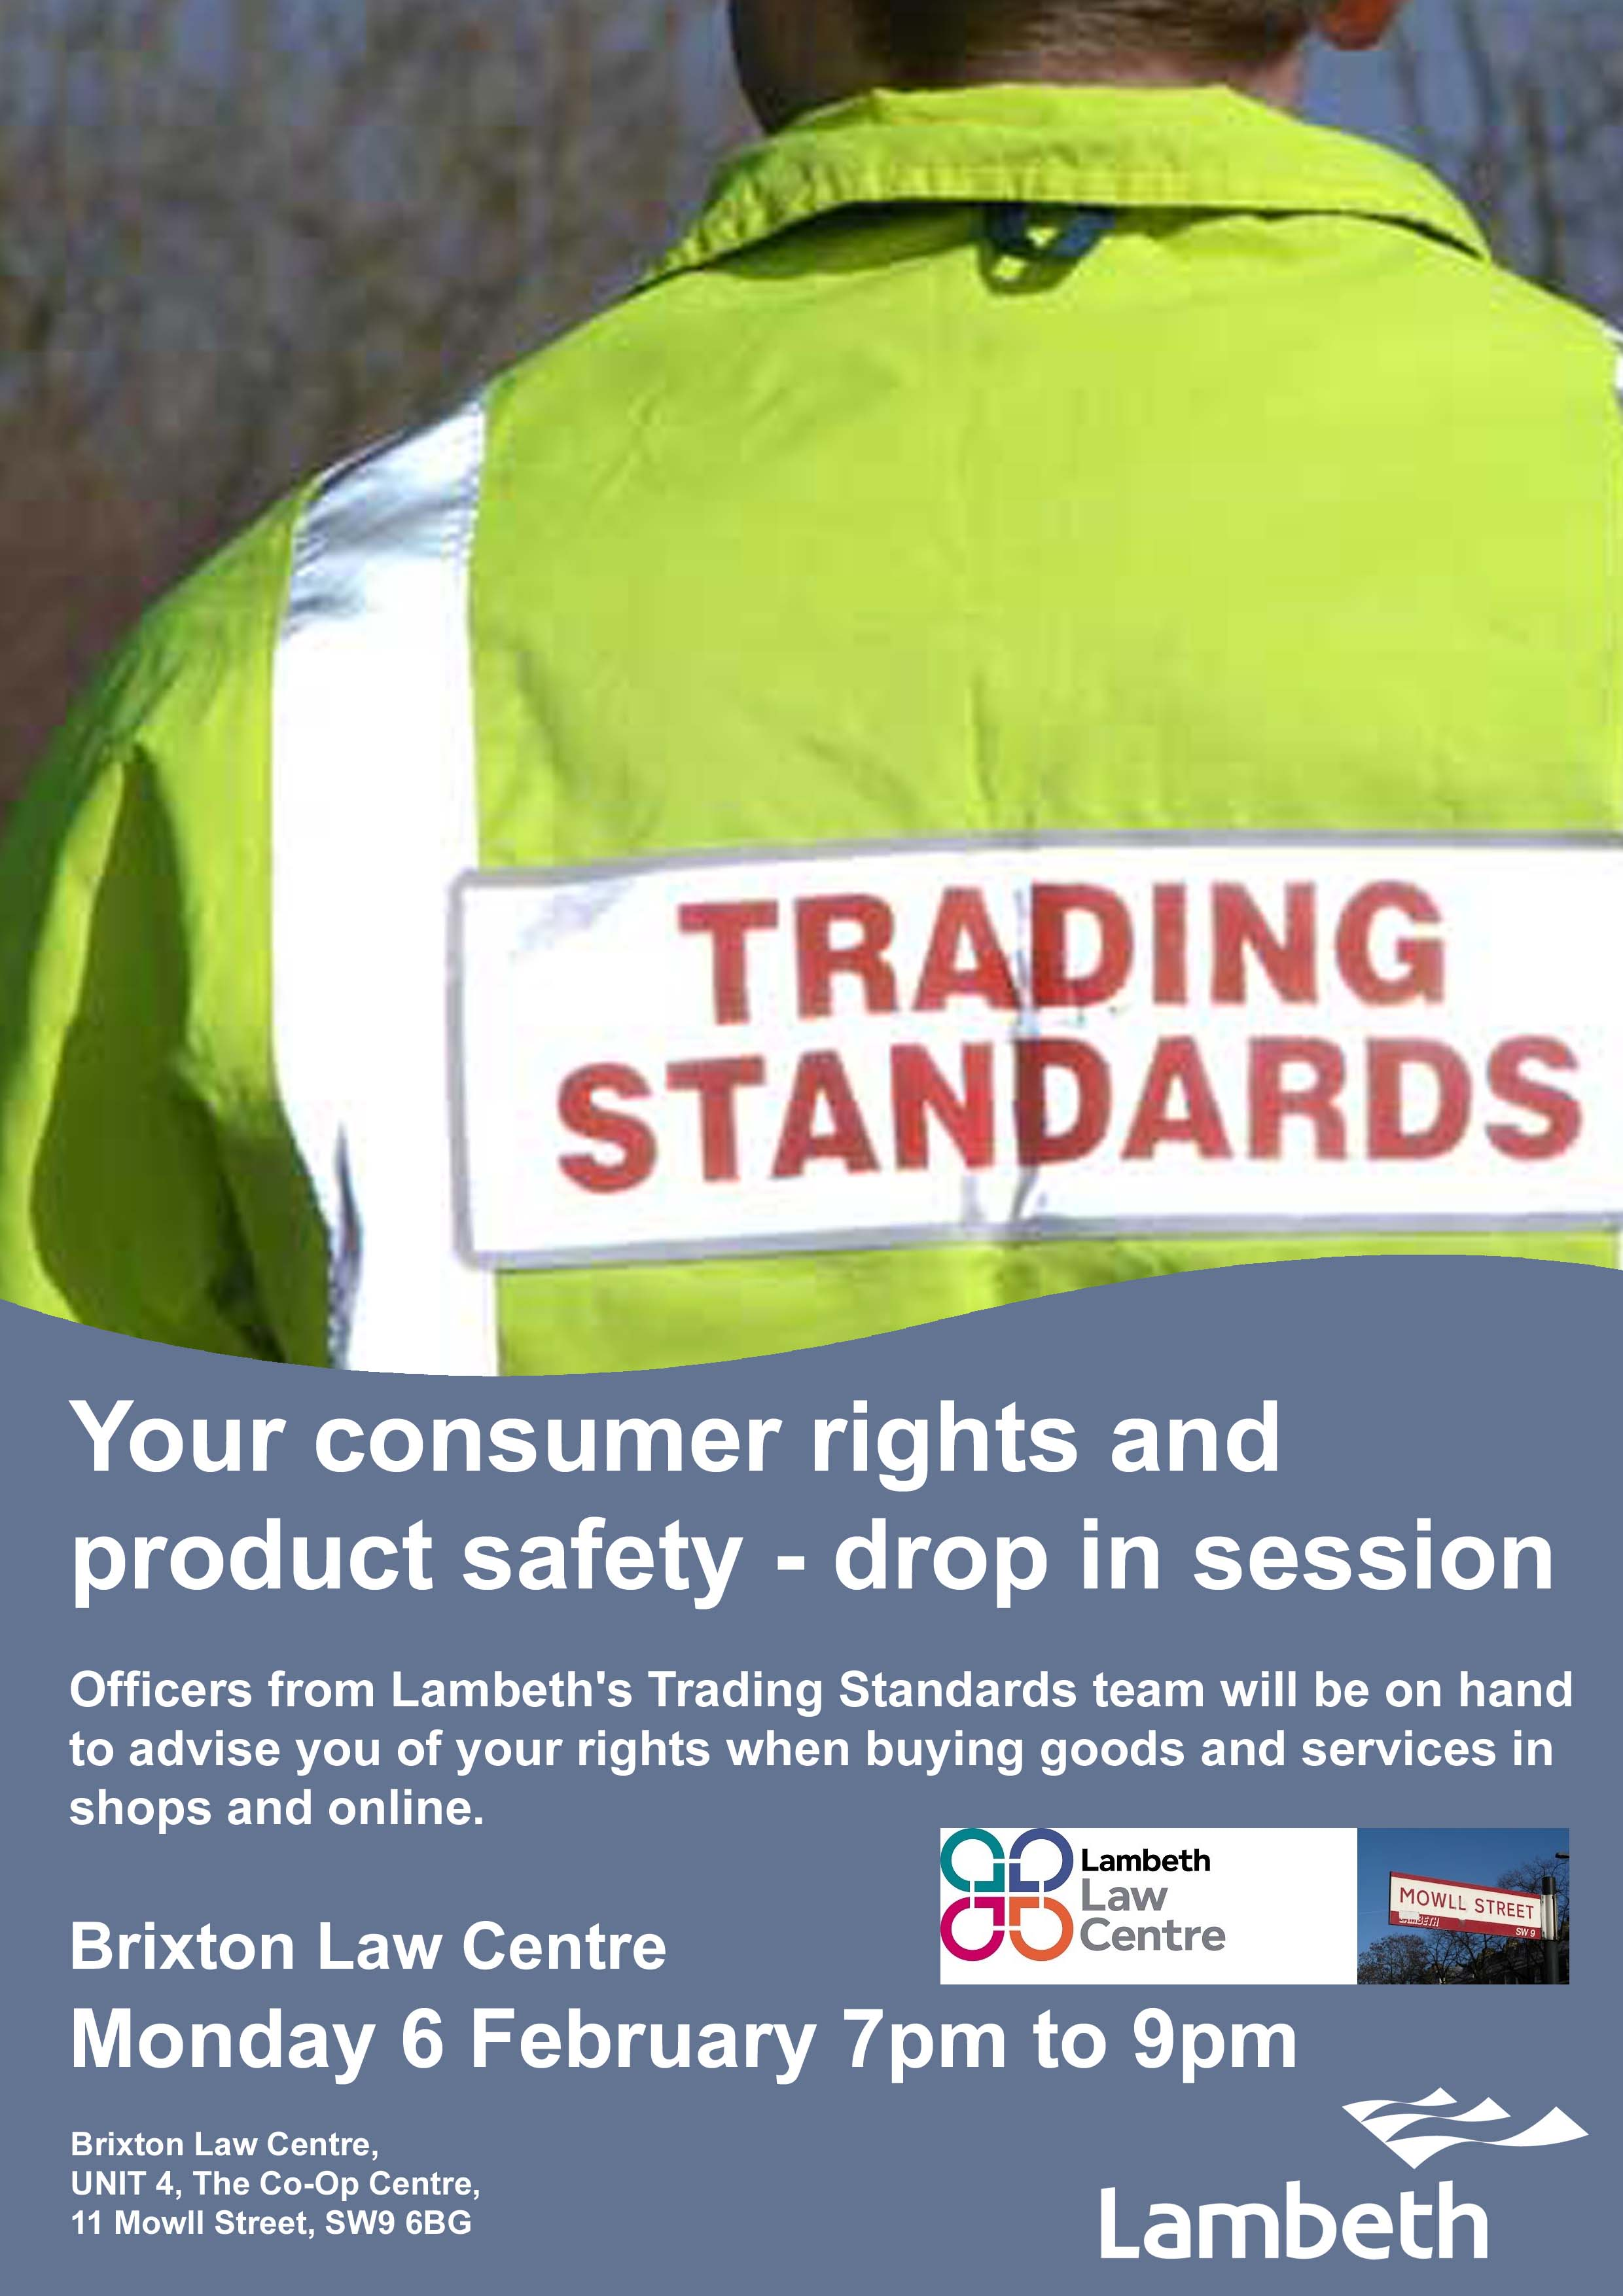 Poster for consumer rights drop-in session Brixton Law Centre 6 February